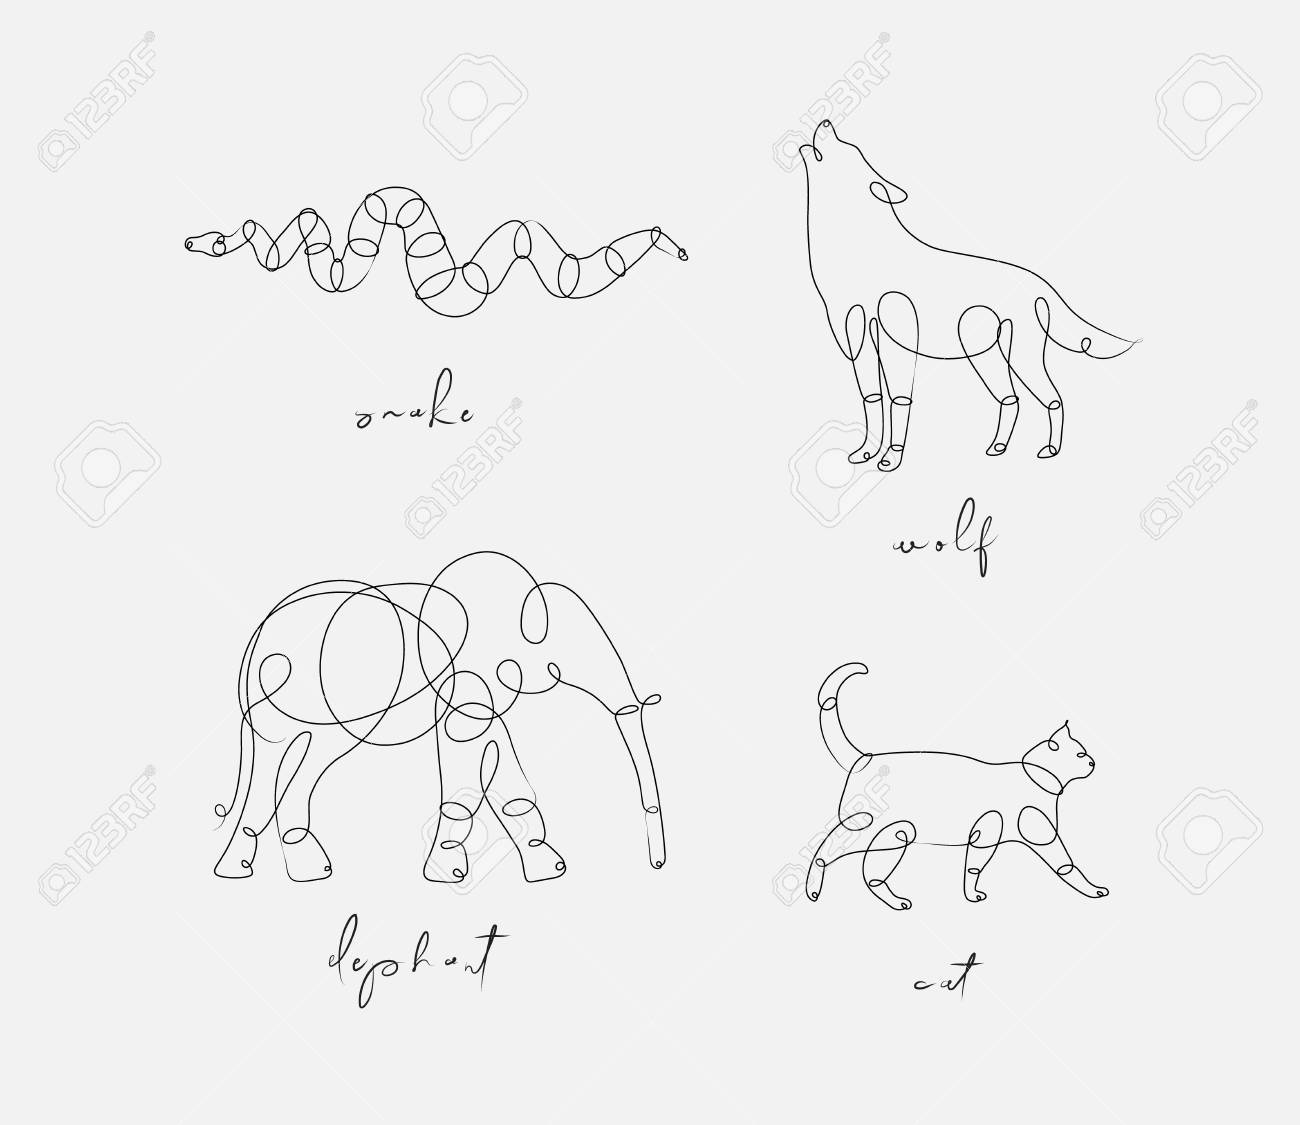 Set of animals snake, wolf, elephant, cat drawing in pen line style on light background - 126087687